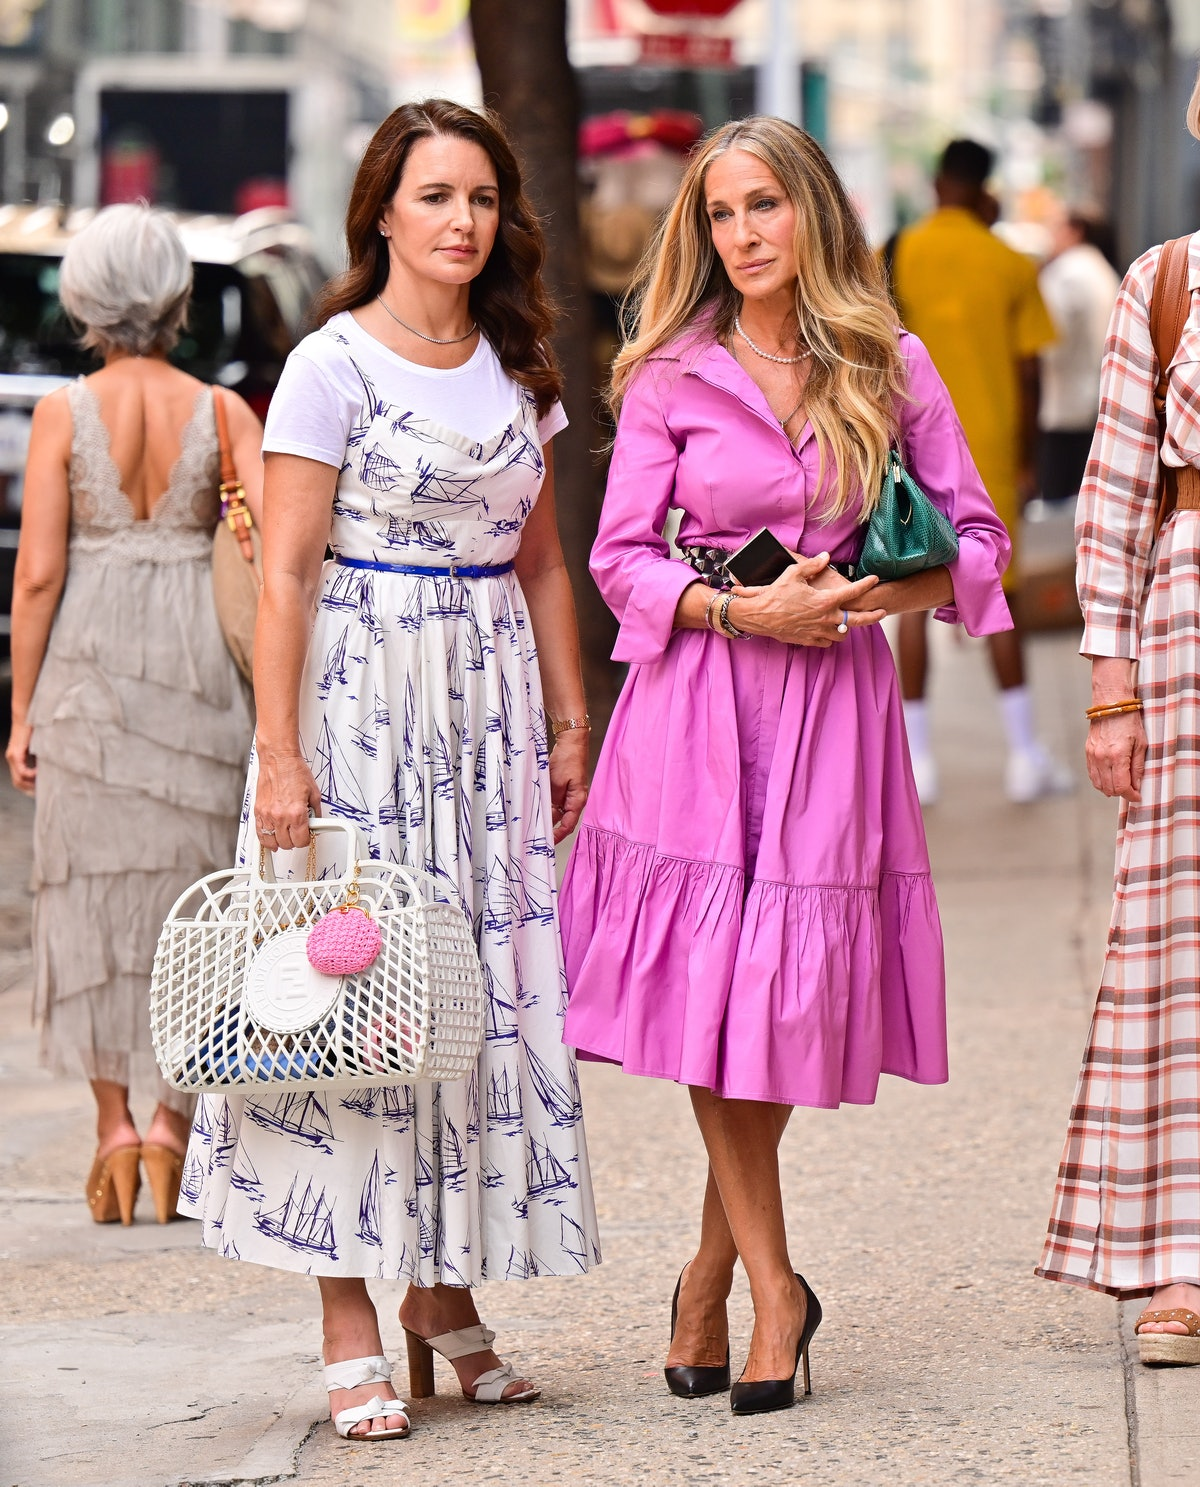 """NEW YORK, NEW YORK - JULY 20:  Kristin Davis and Sarah Jessica Parker are seen on the set of """"And Just Like That..."""" the follow up series to """"Sex and the City"""" in SoHo on July 20, 2021 in New York City. (Photo by James Devaney/GC Images)"""